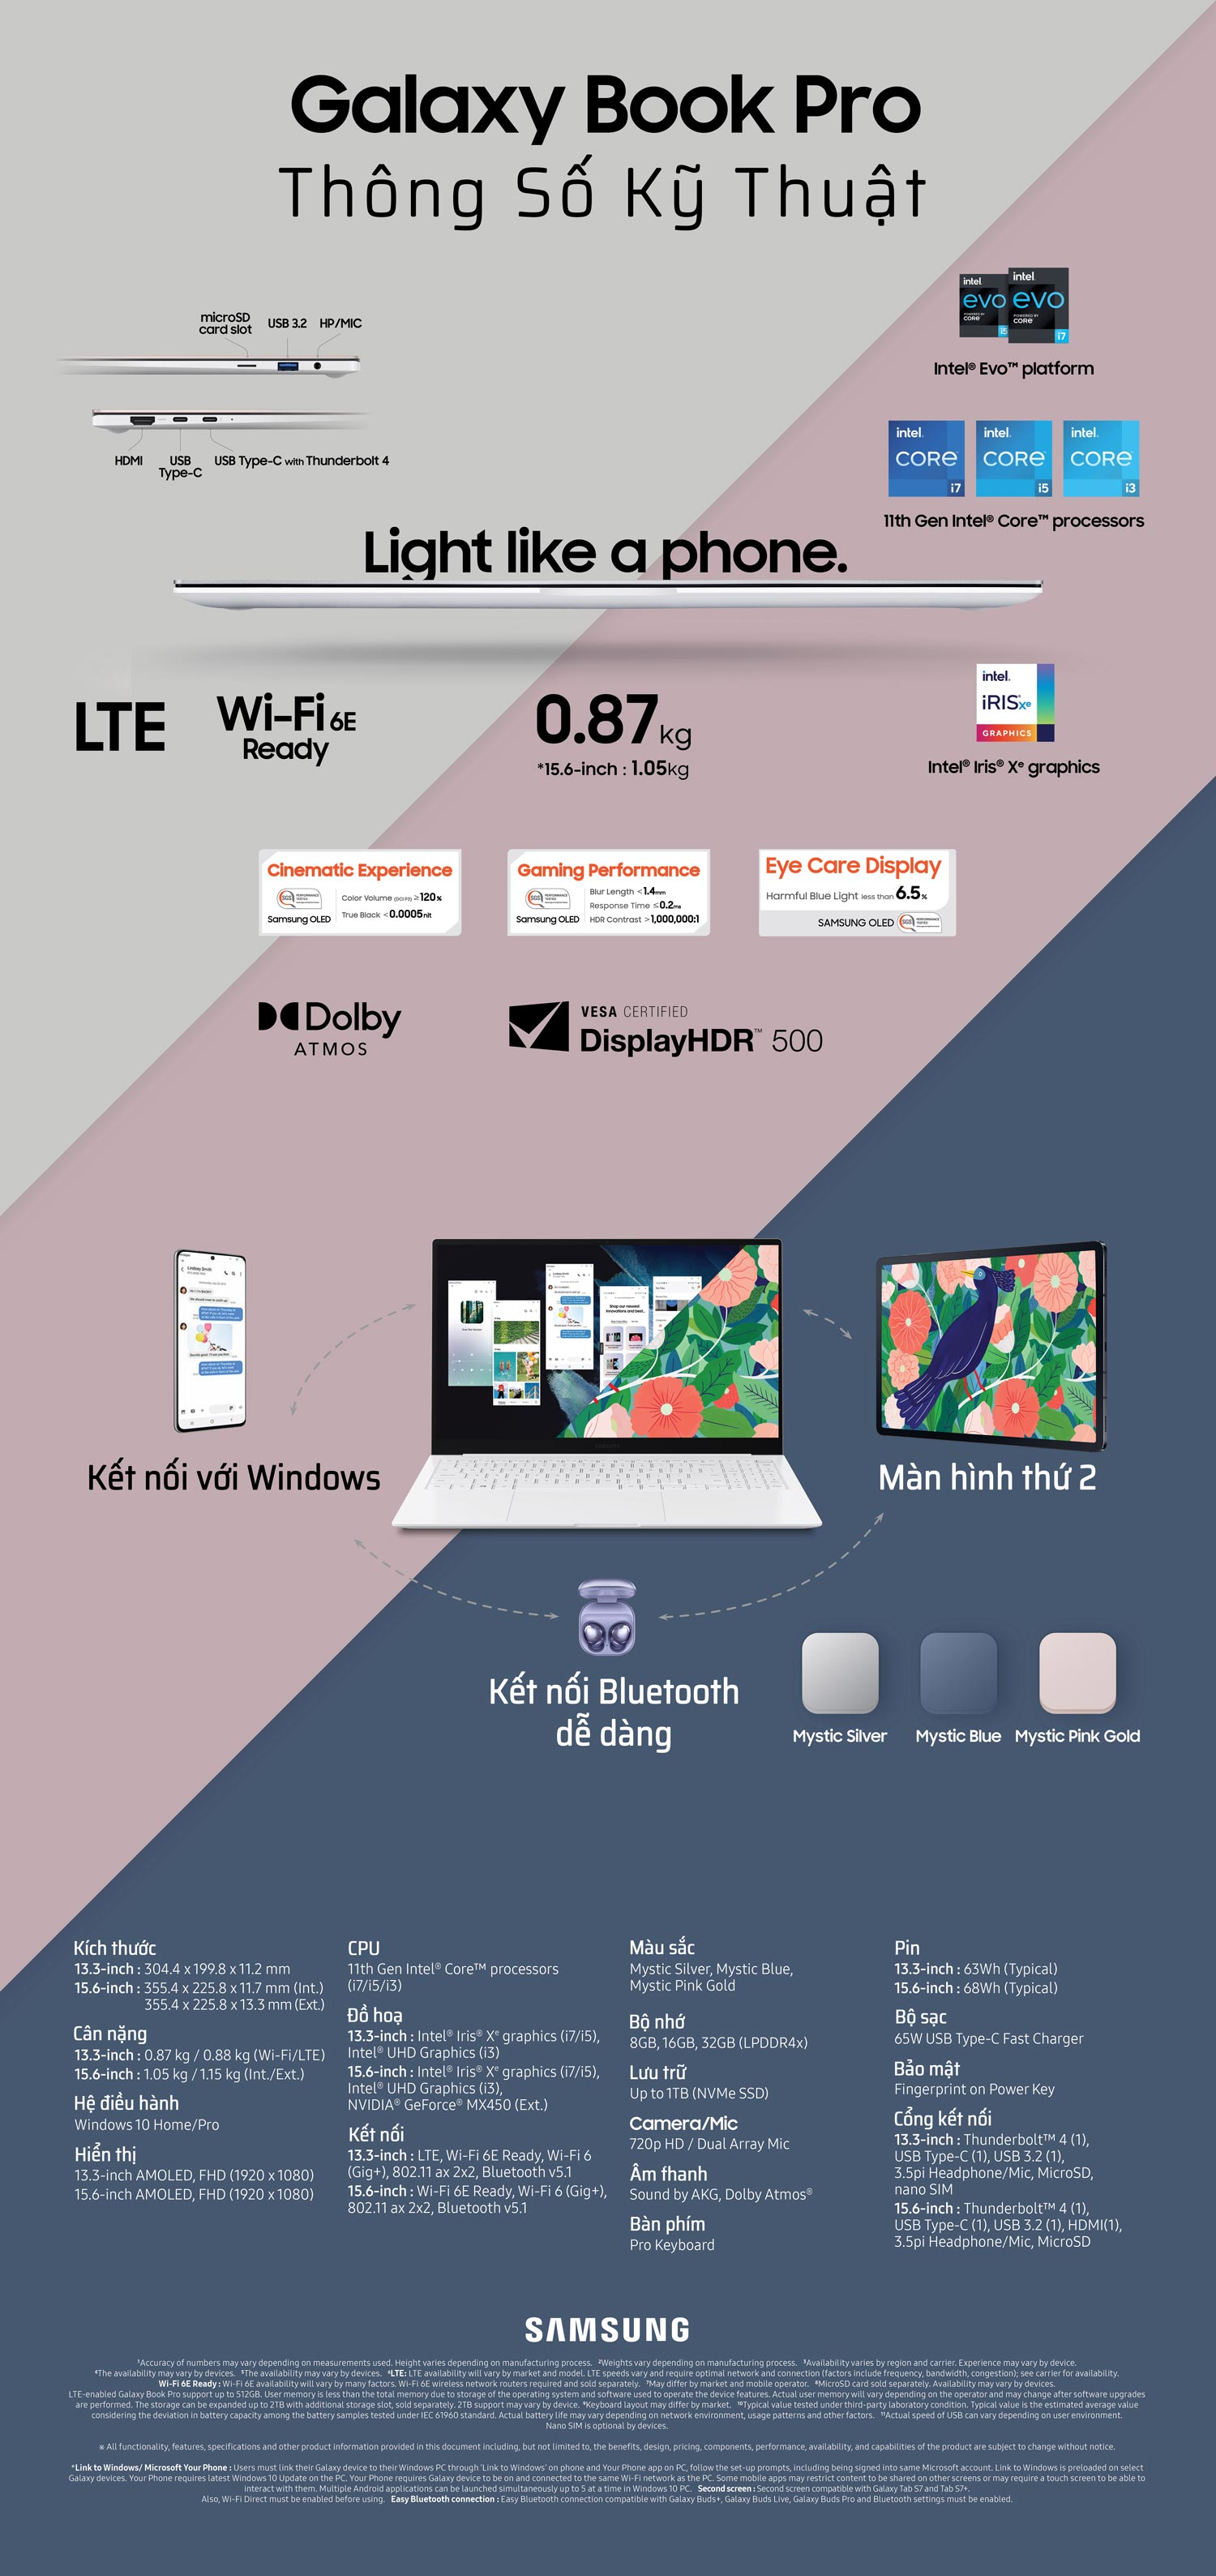 galaxy_book_pro_product_specifications-tinhte.jpg